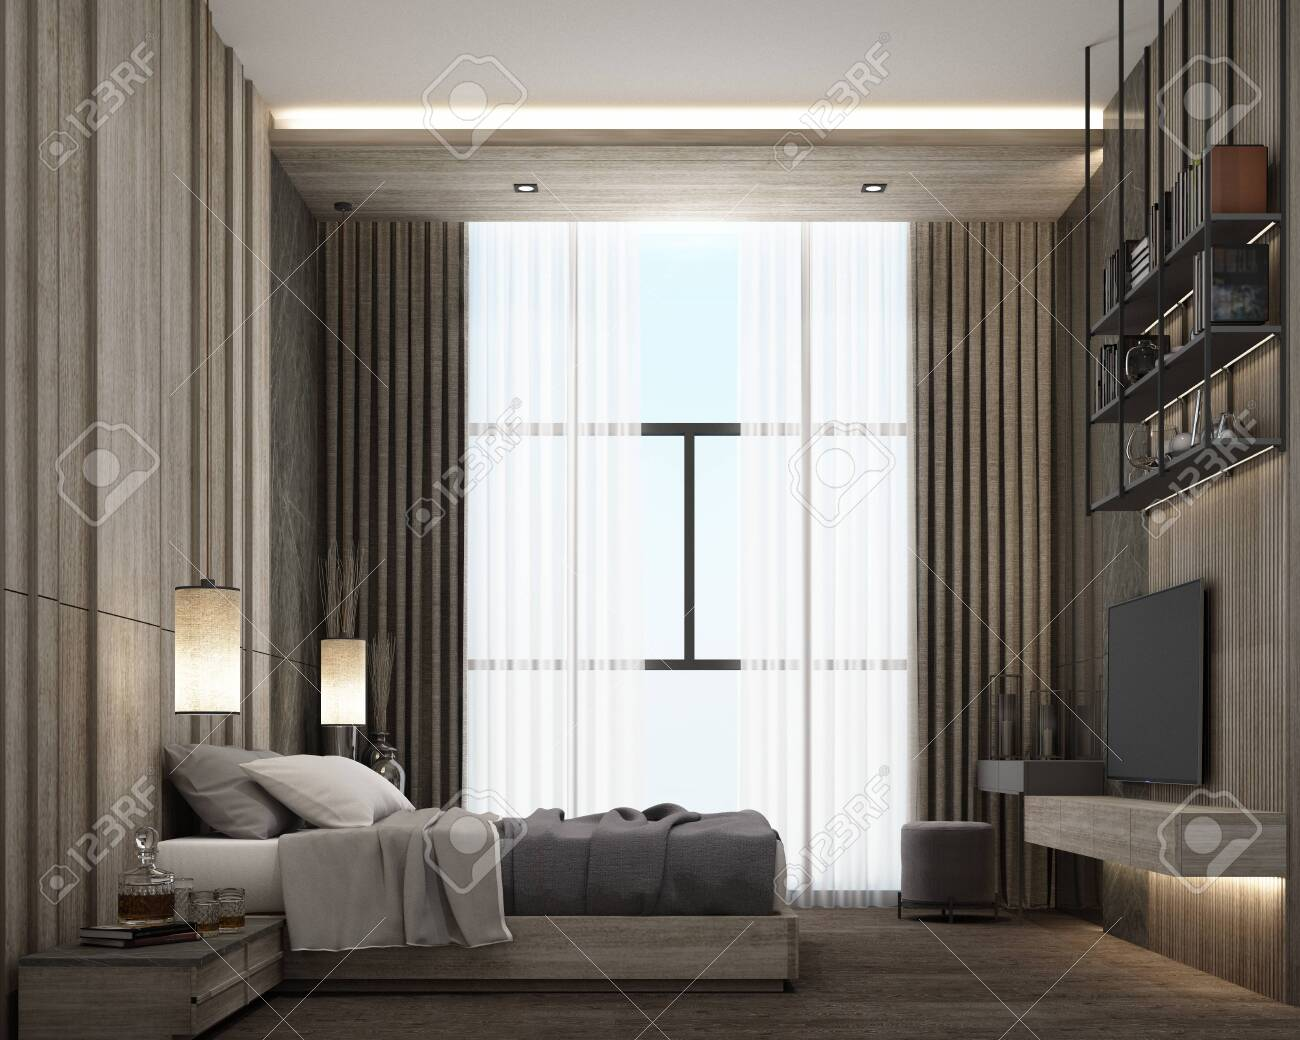 Interior Design Of Modern Luxury Bedroom Room With Bed And Night Stock Photo Picture And Royalty Free Image Image 132808146